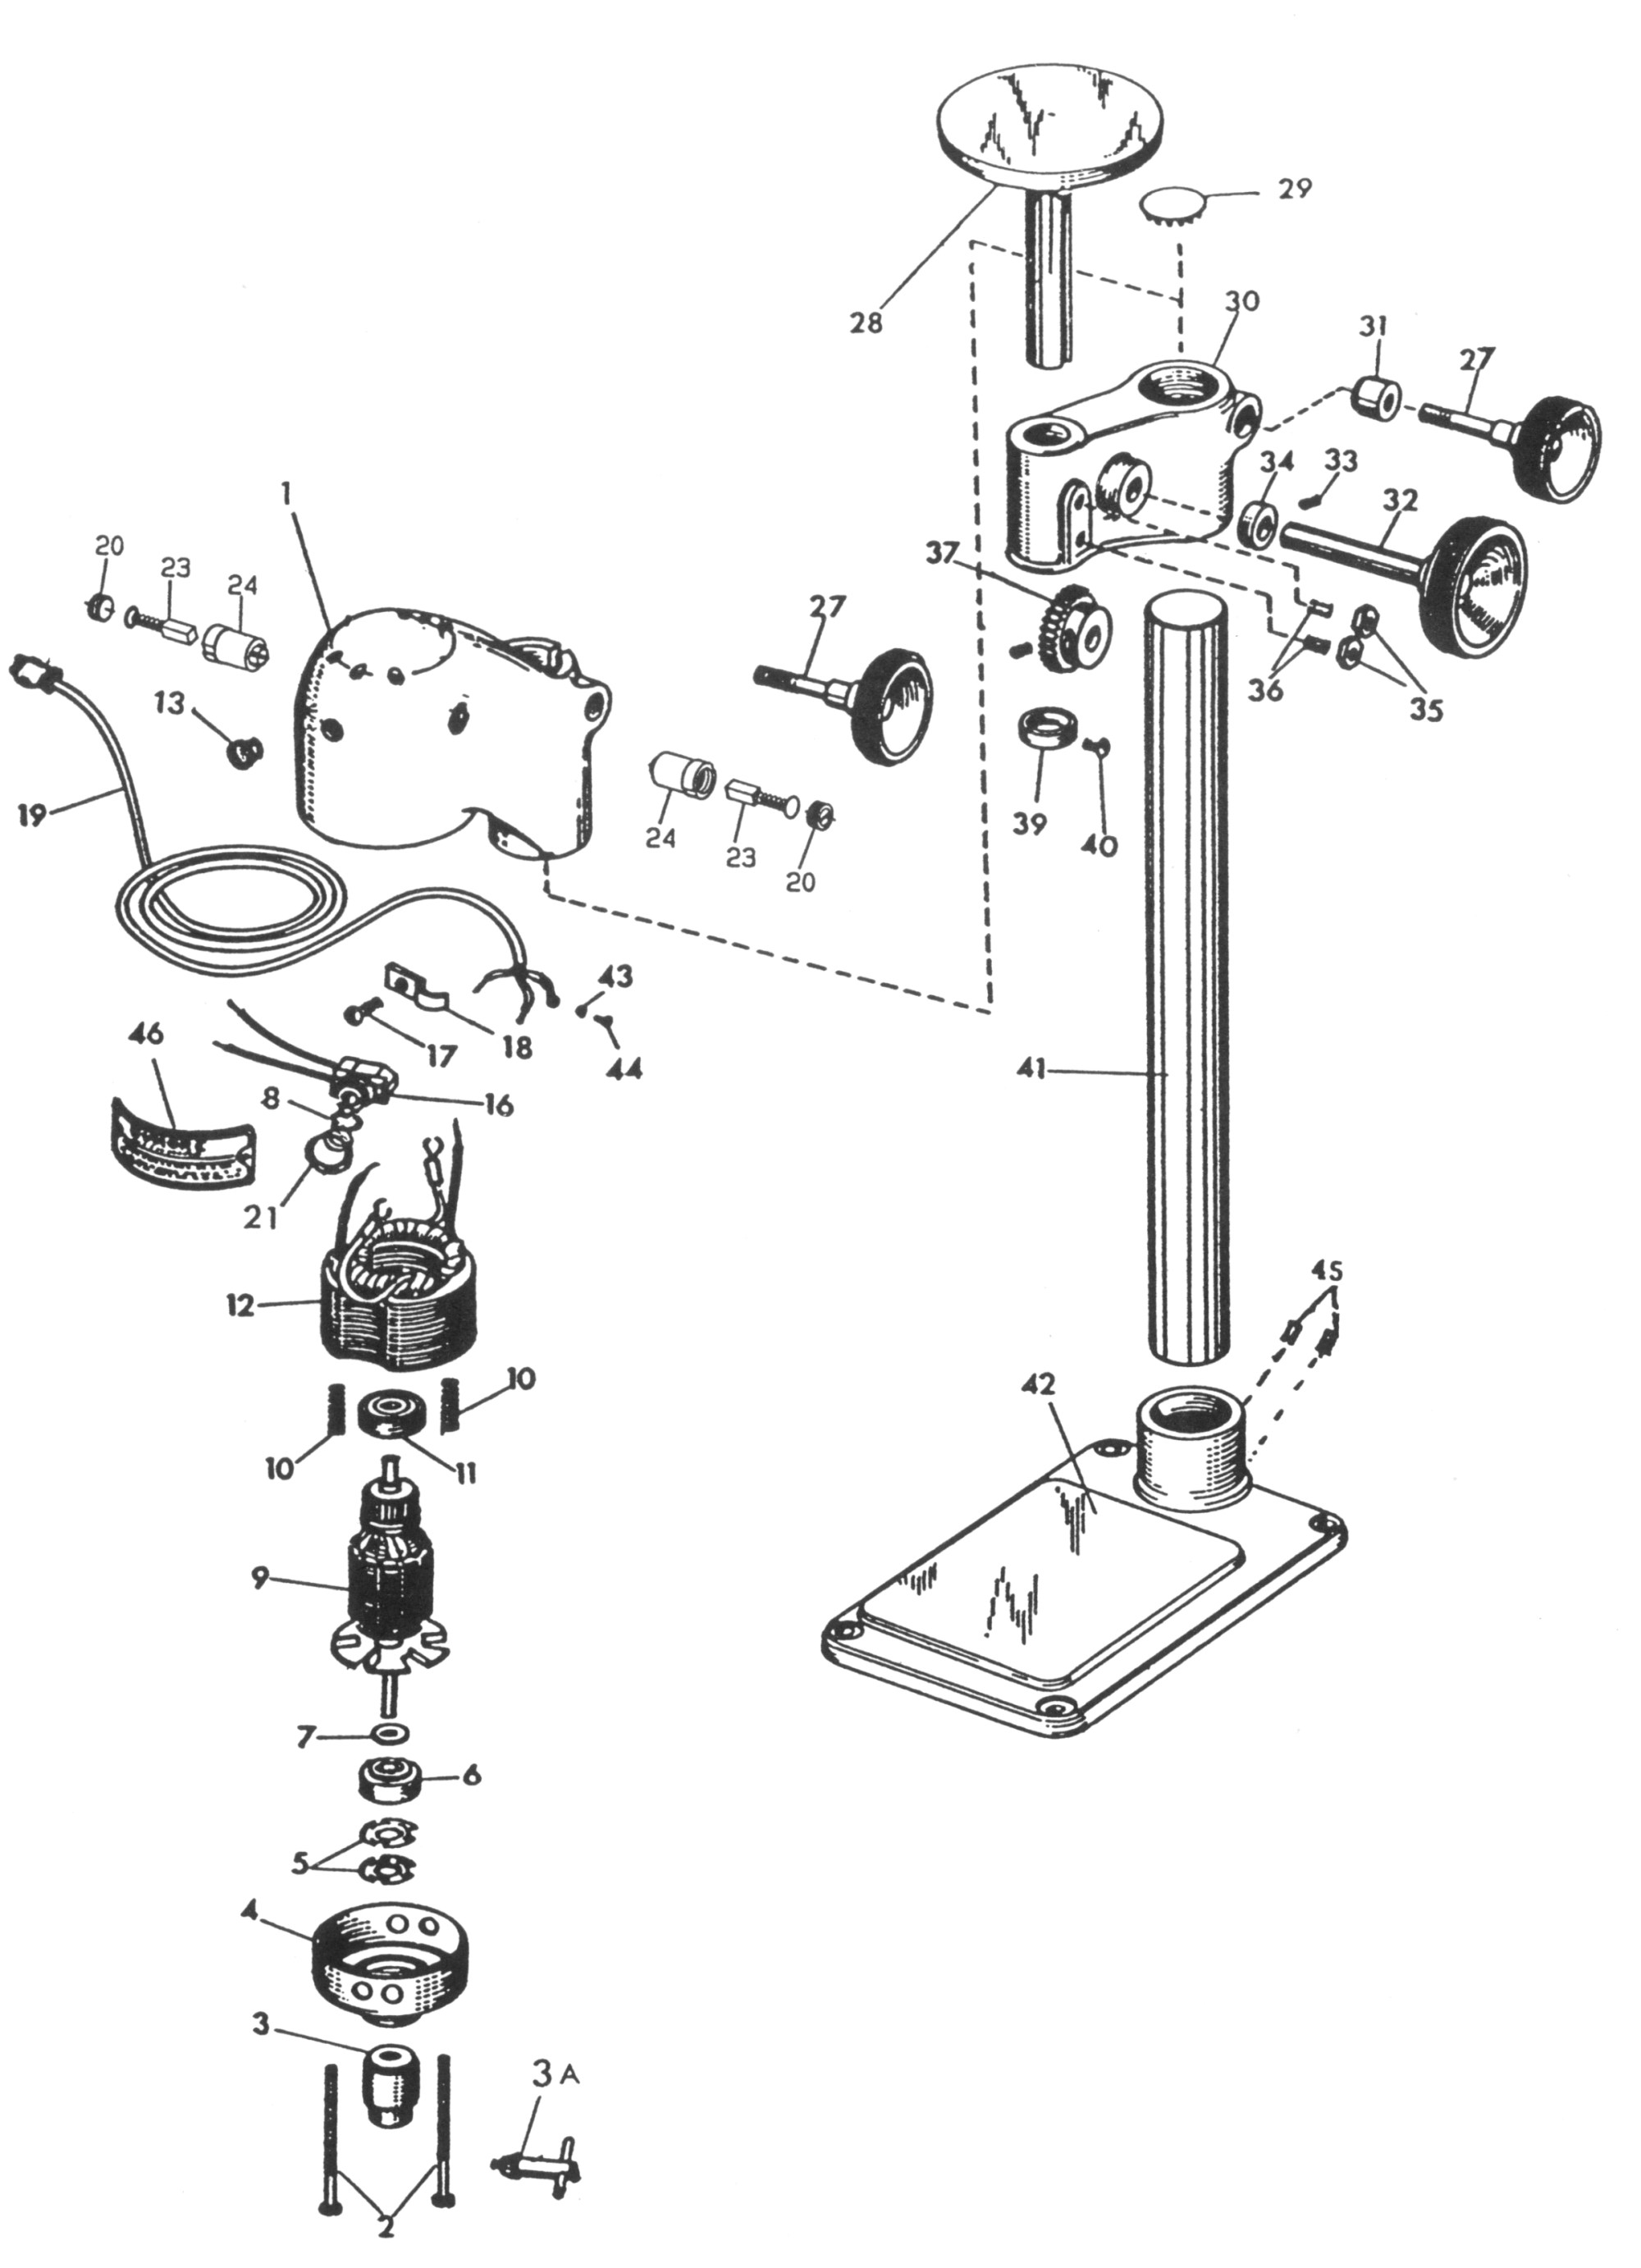 hight resolution of sensitive drill press replacement parts dumore series 16 sensitive drill presses